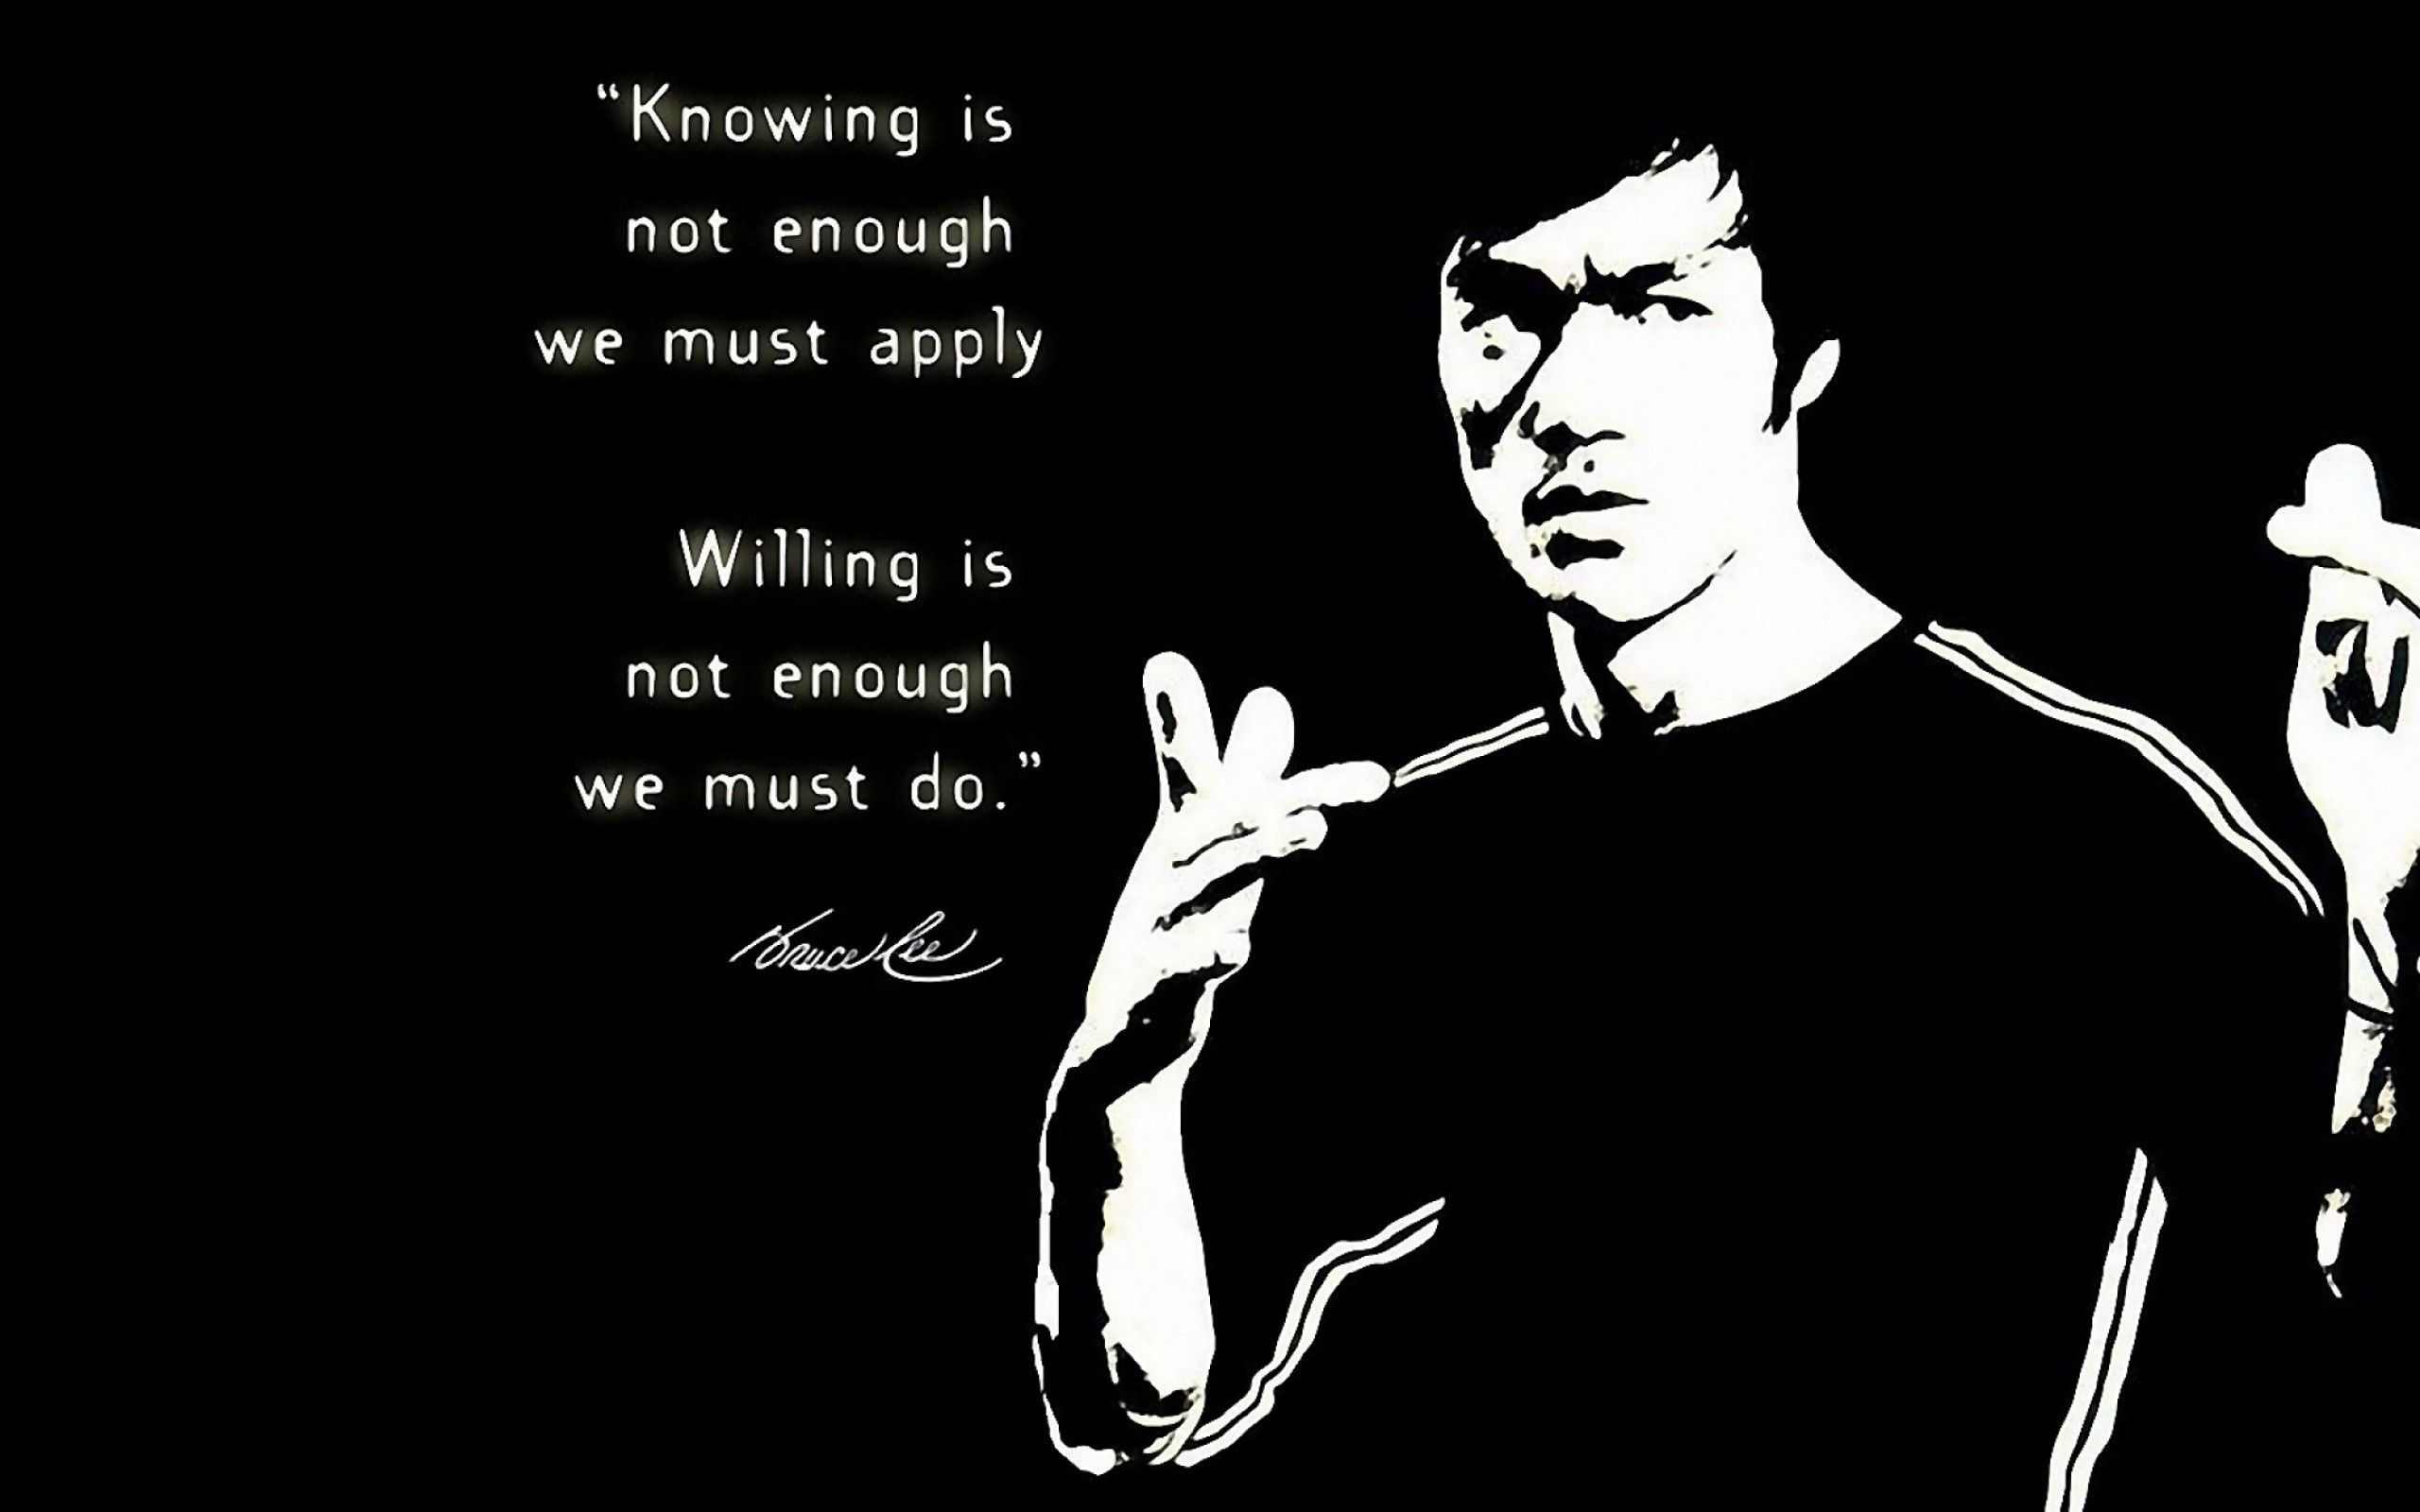 Bruce Lee Quotes Wallpaper Hd 2802 Desktop Computergadget And